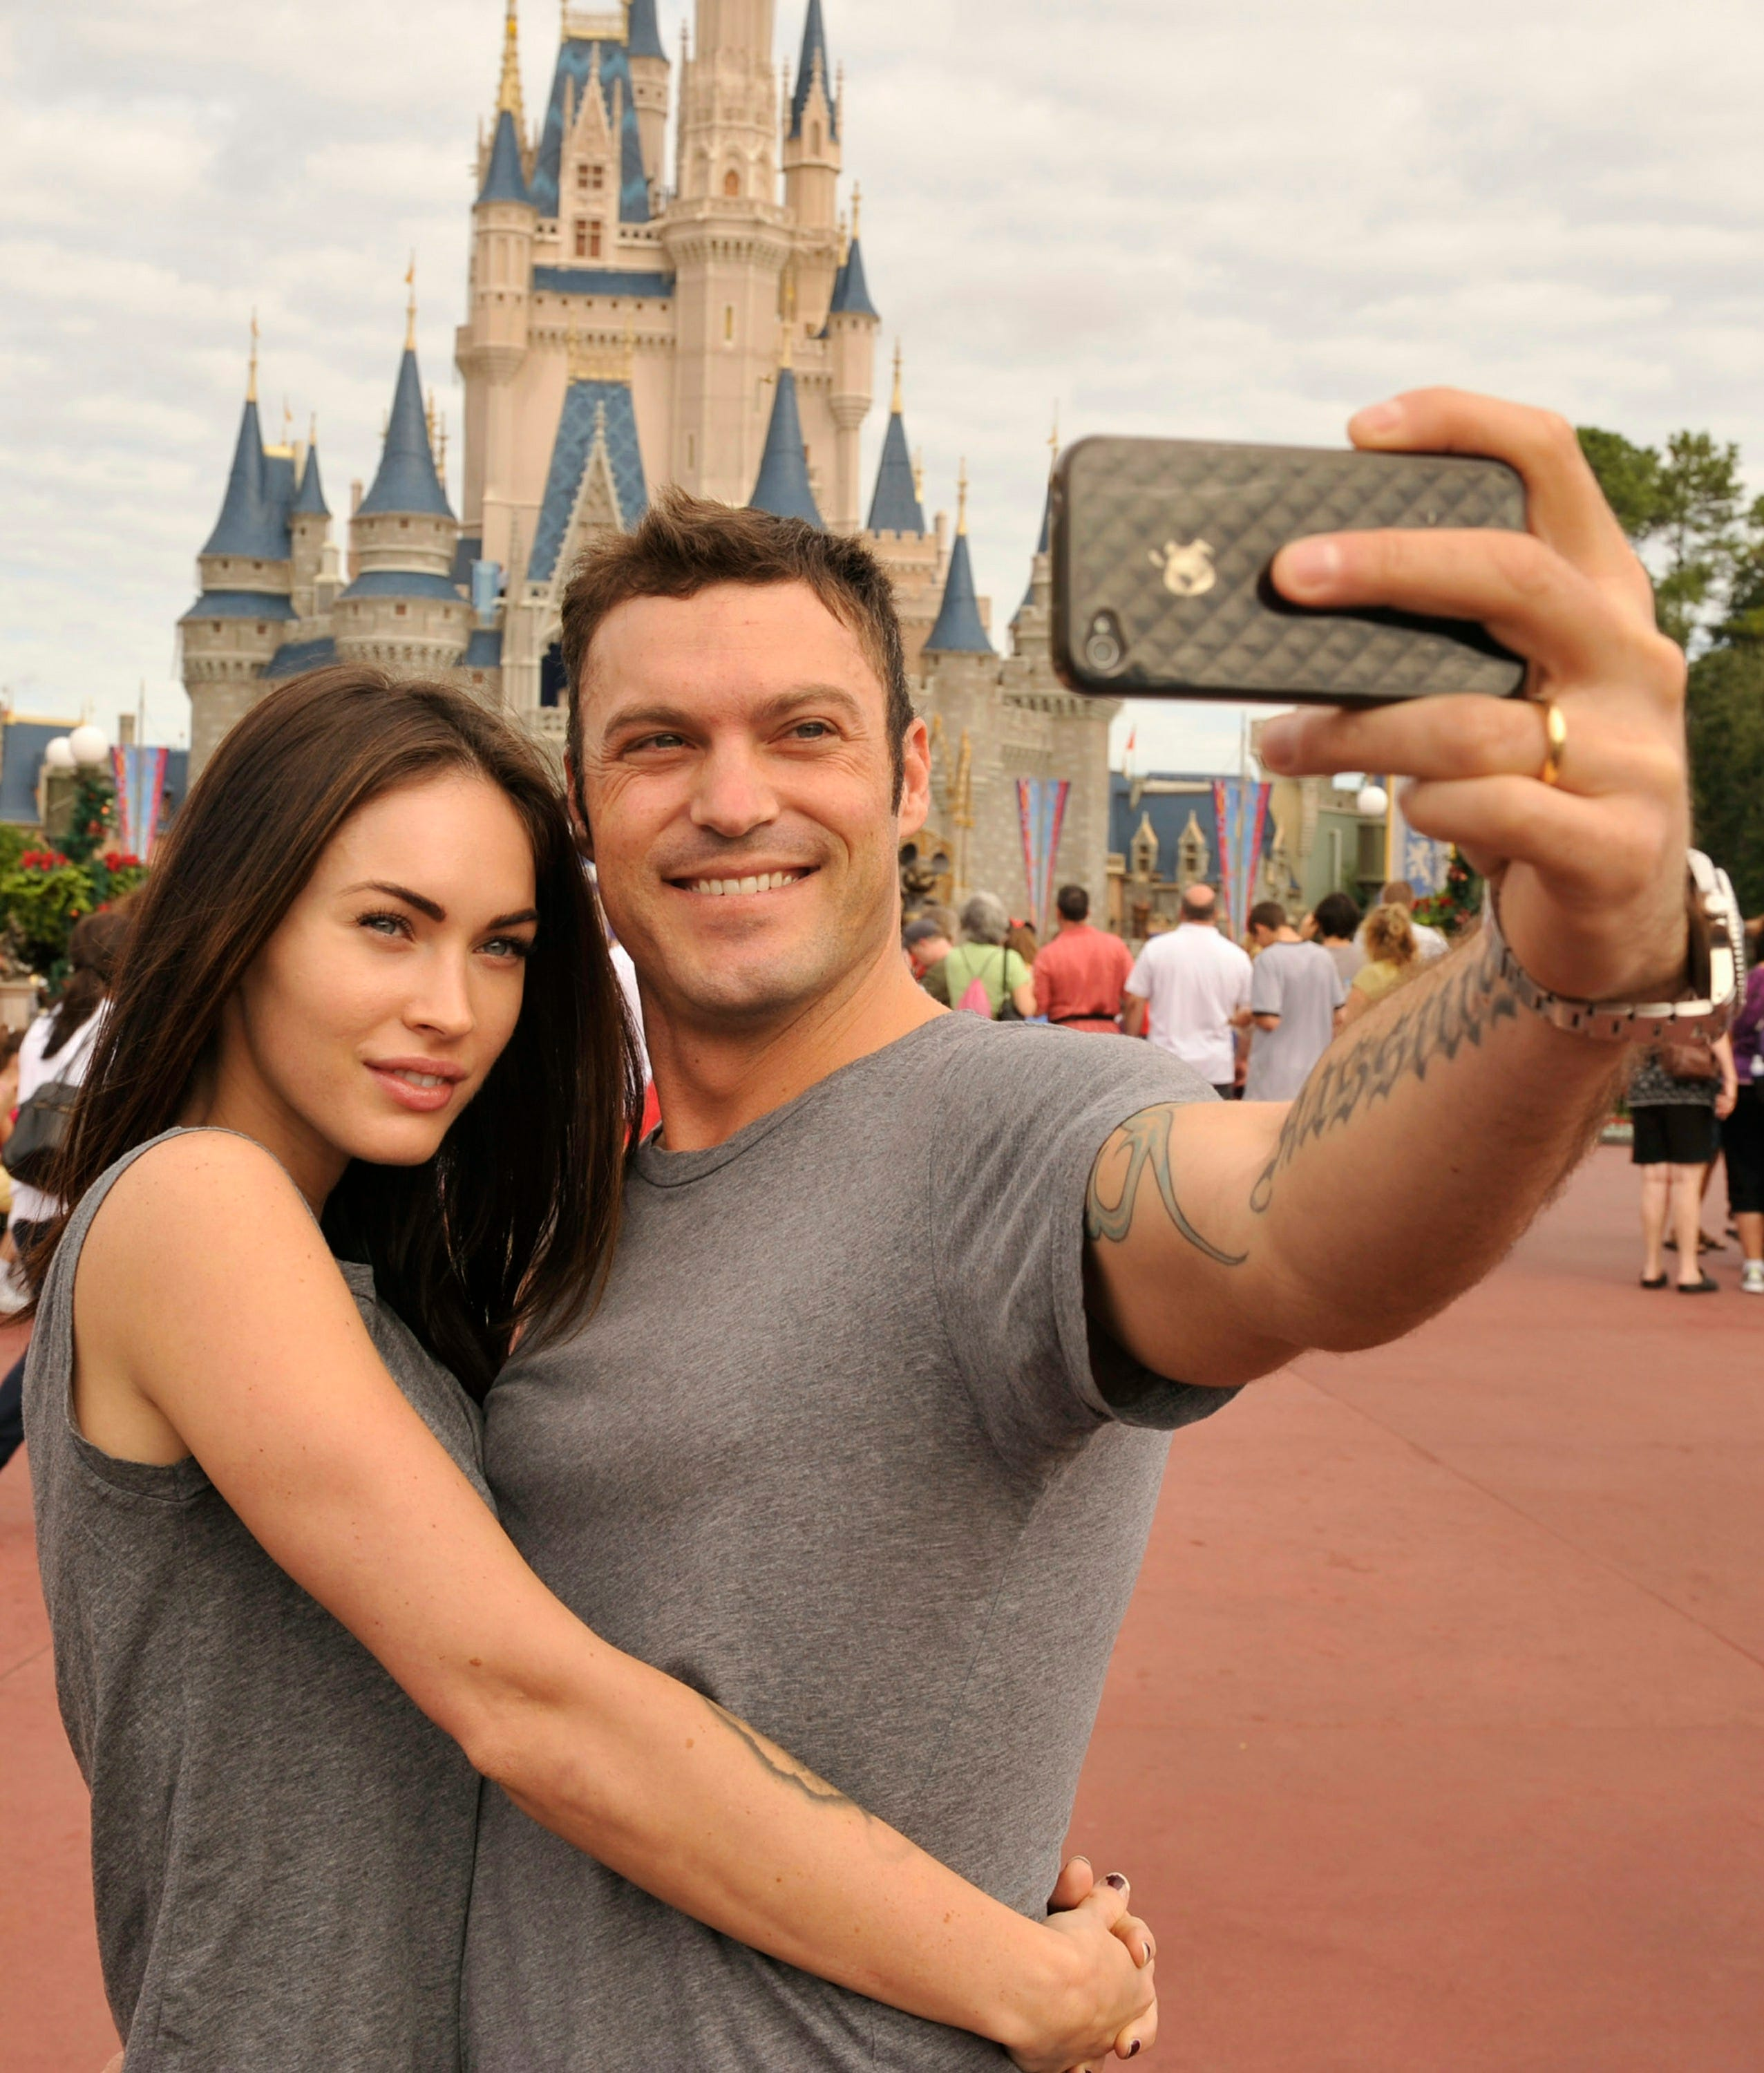 Slide 4 of 8: Actor Brian Austin Green, right, and his wife, actress/model Megan Fox, take a souvenir photo at Magic Kingdom Nov. 26, 2010.